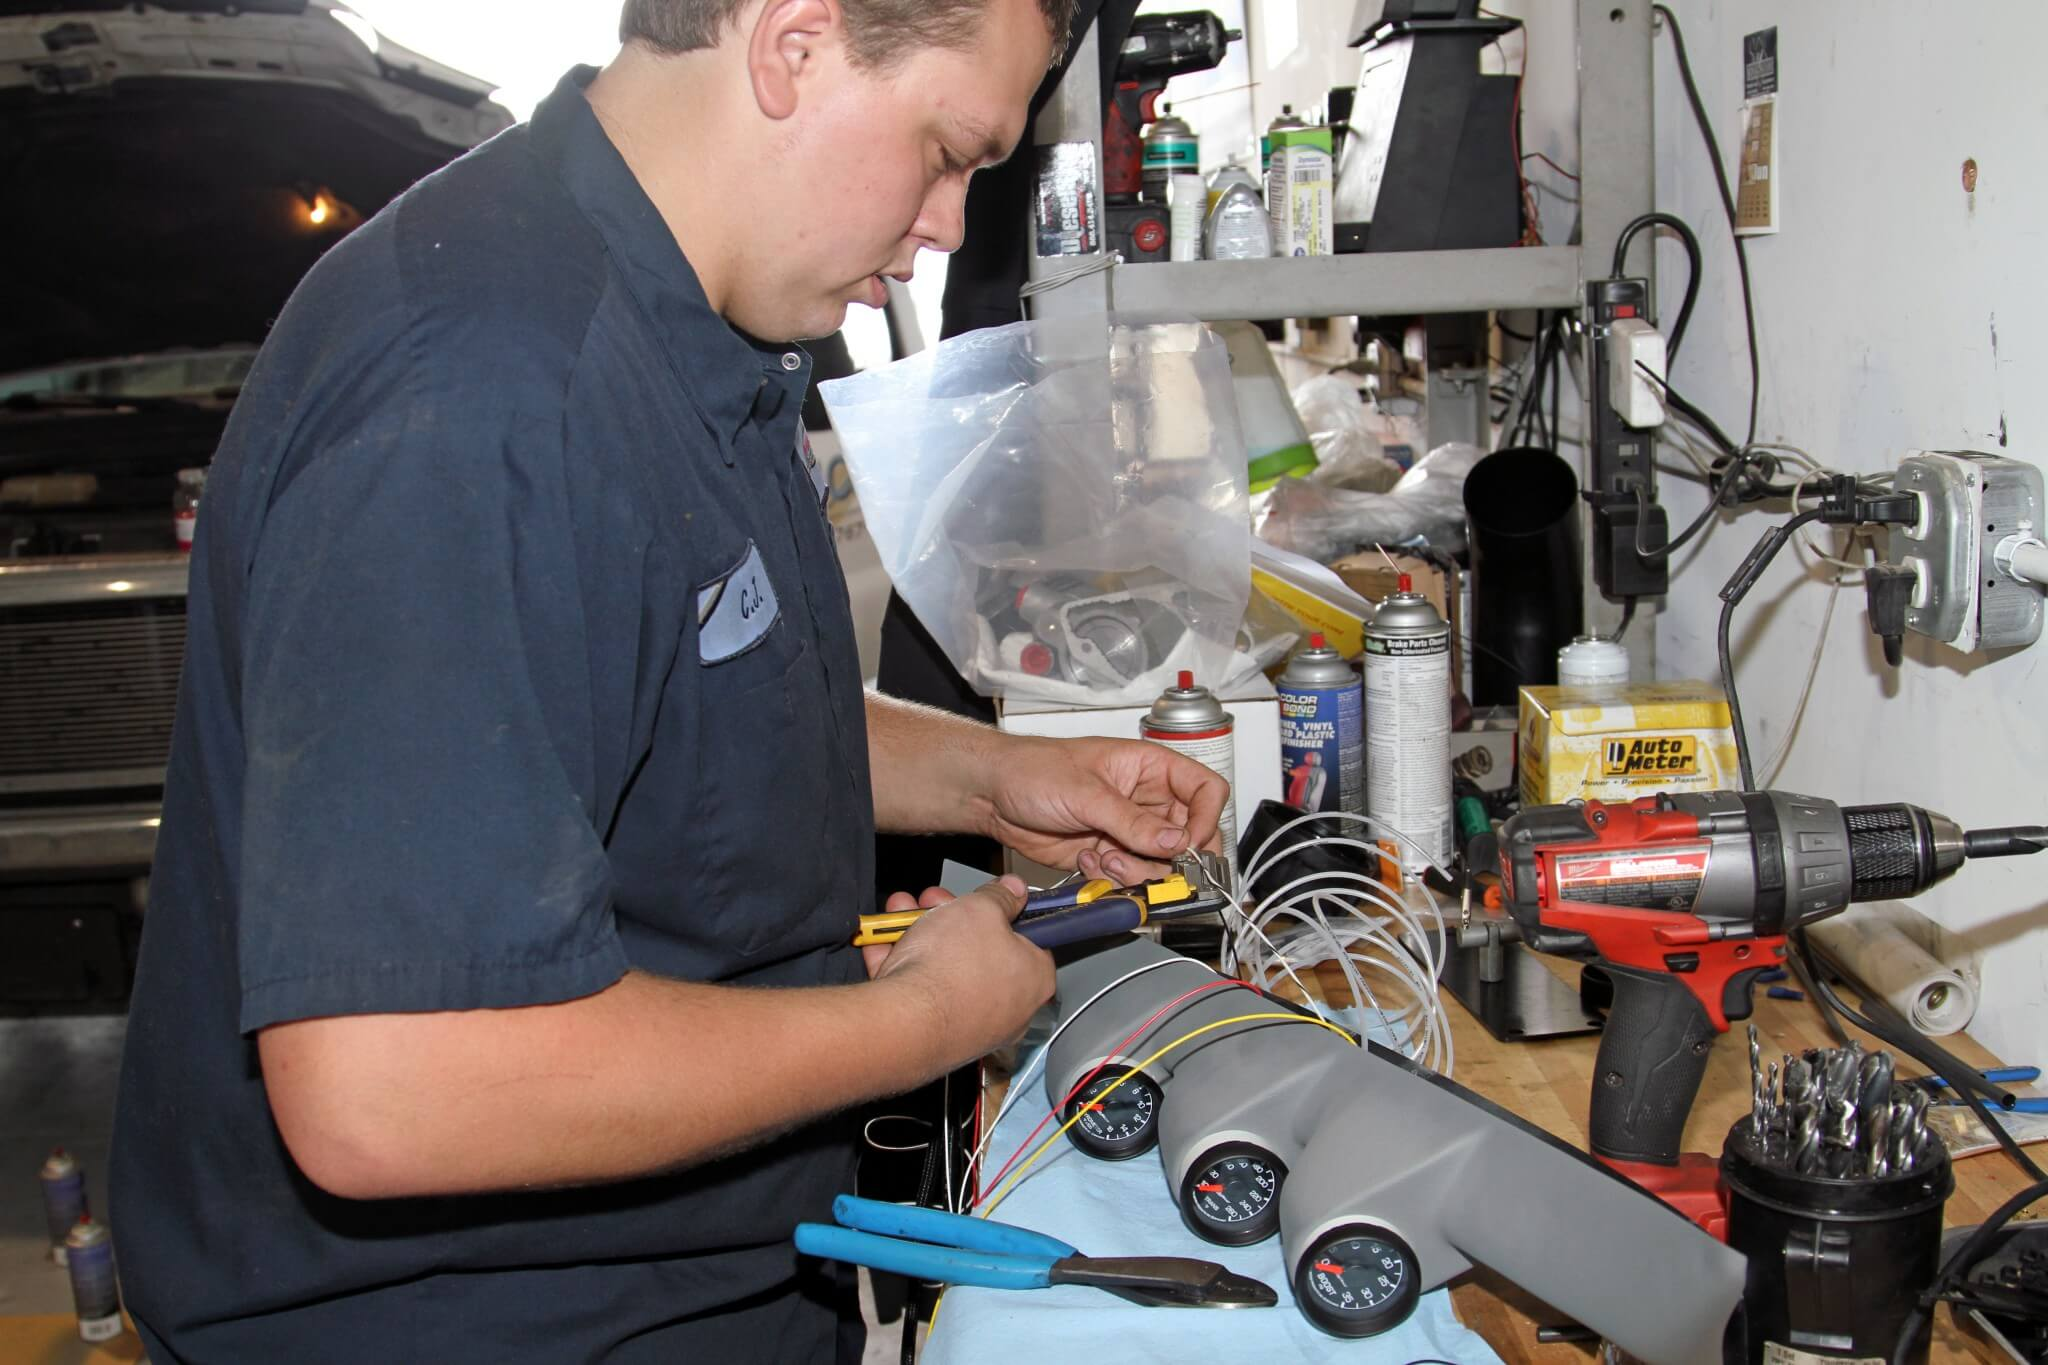 25. Carter slips the gauges partially into the pod and then wires the harnesses using solder and heat-shrink tubing for secure connections that will last the life of the truck.